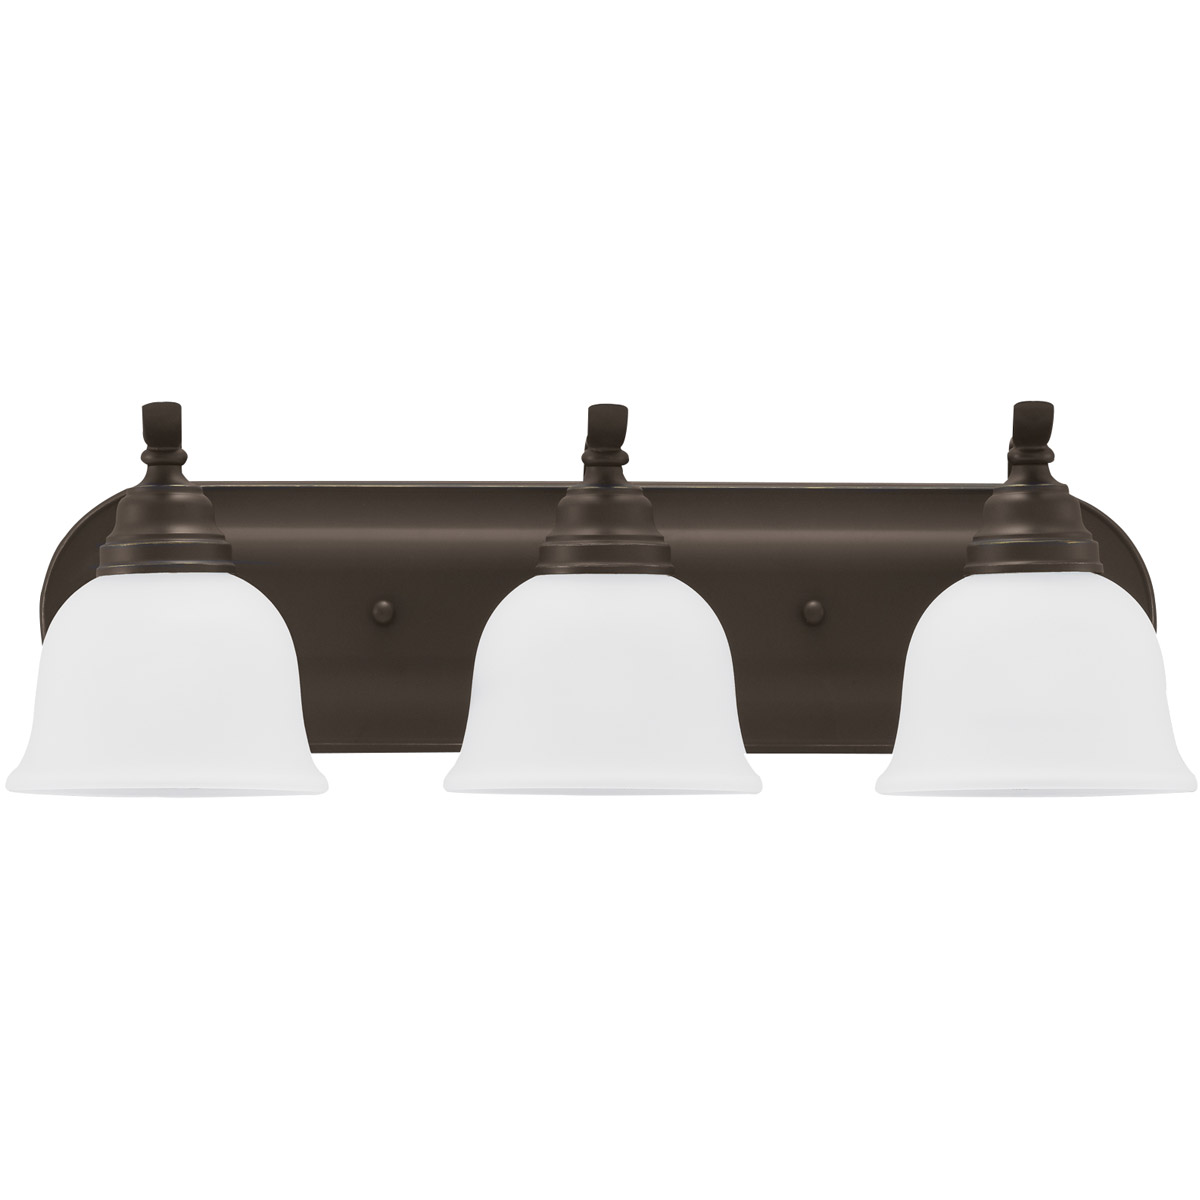 Sea Gull Lighting Wheaton 3 Light Bath Vanity in Heirloom Bronze 44627-782